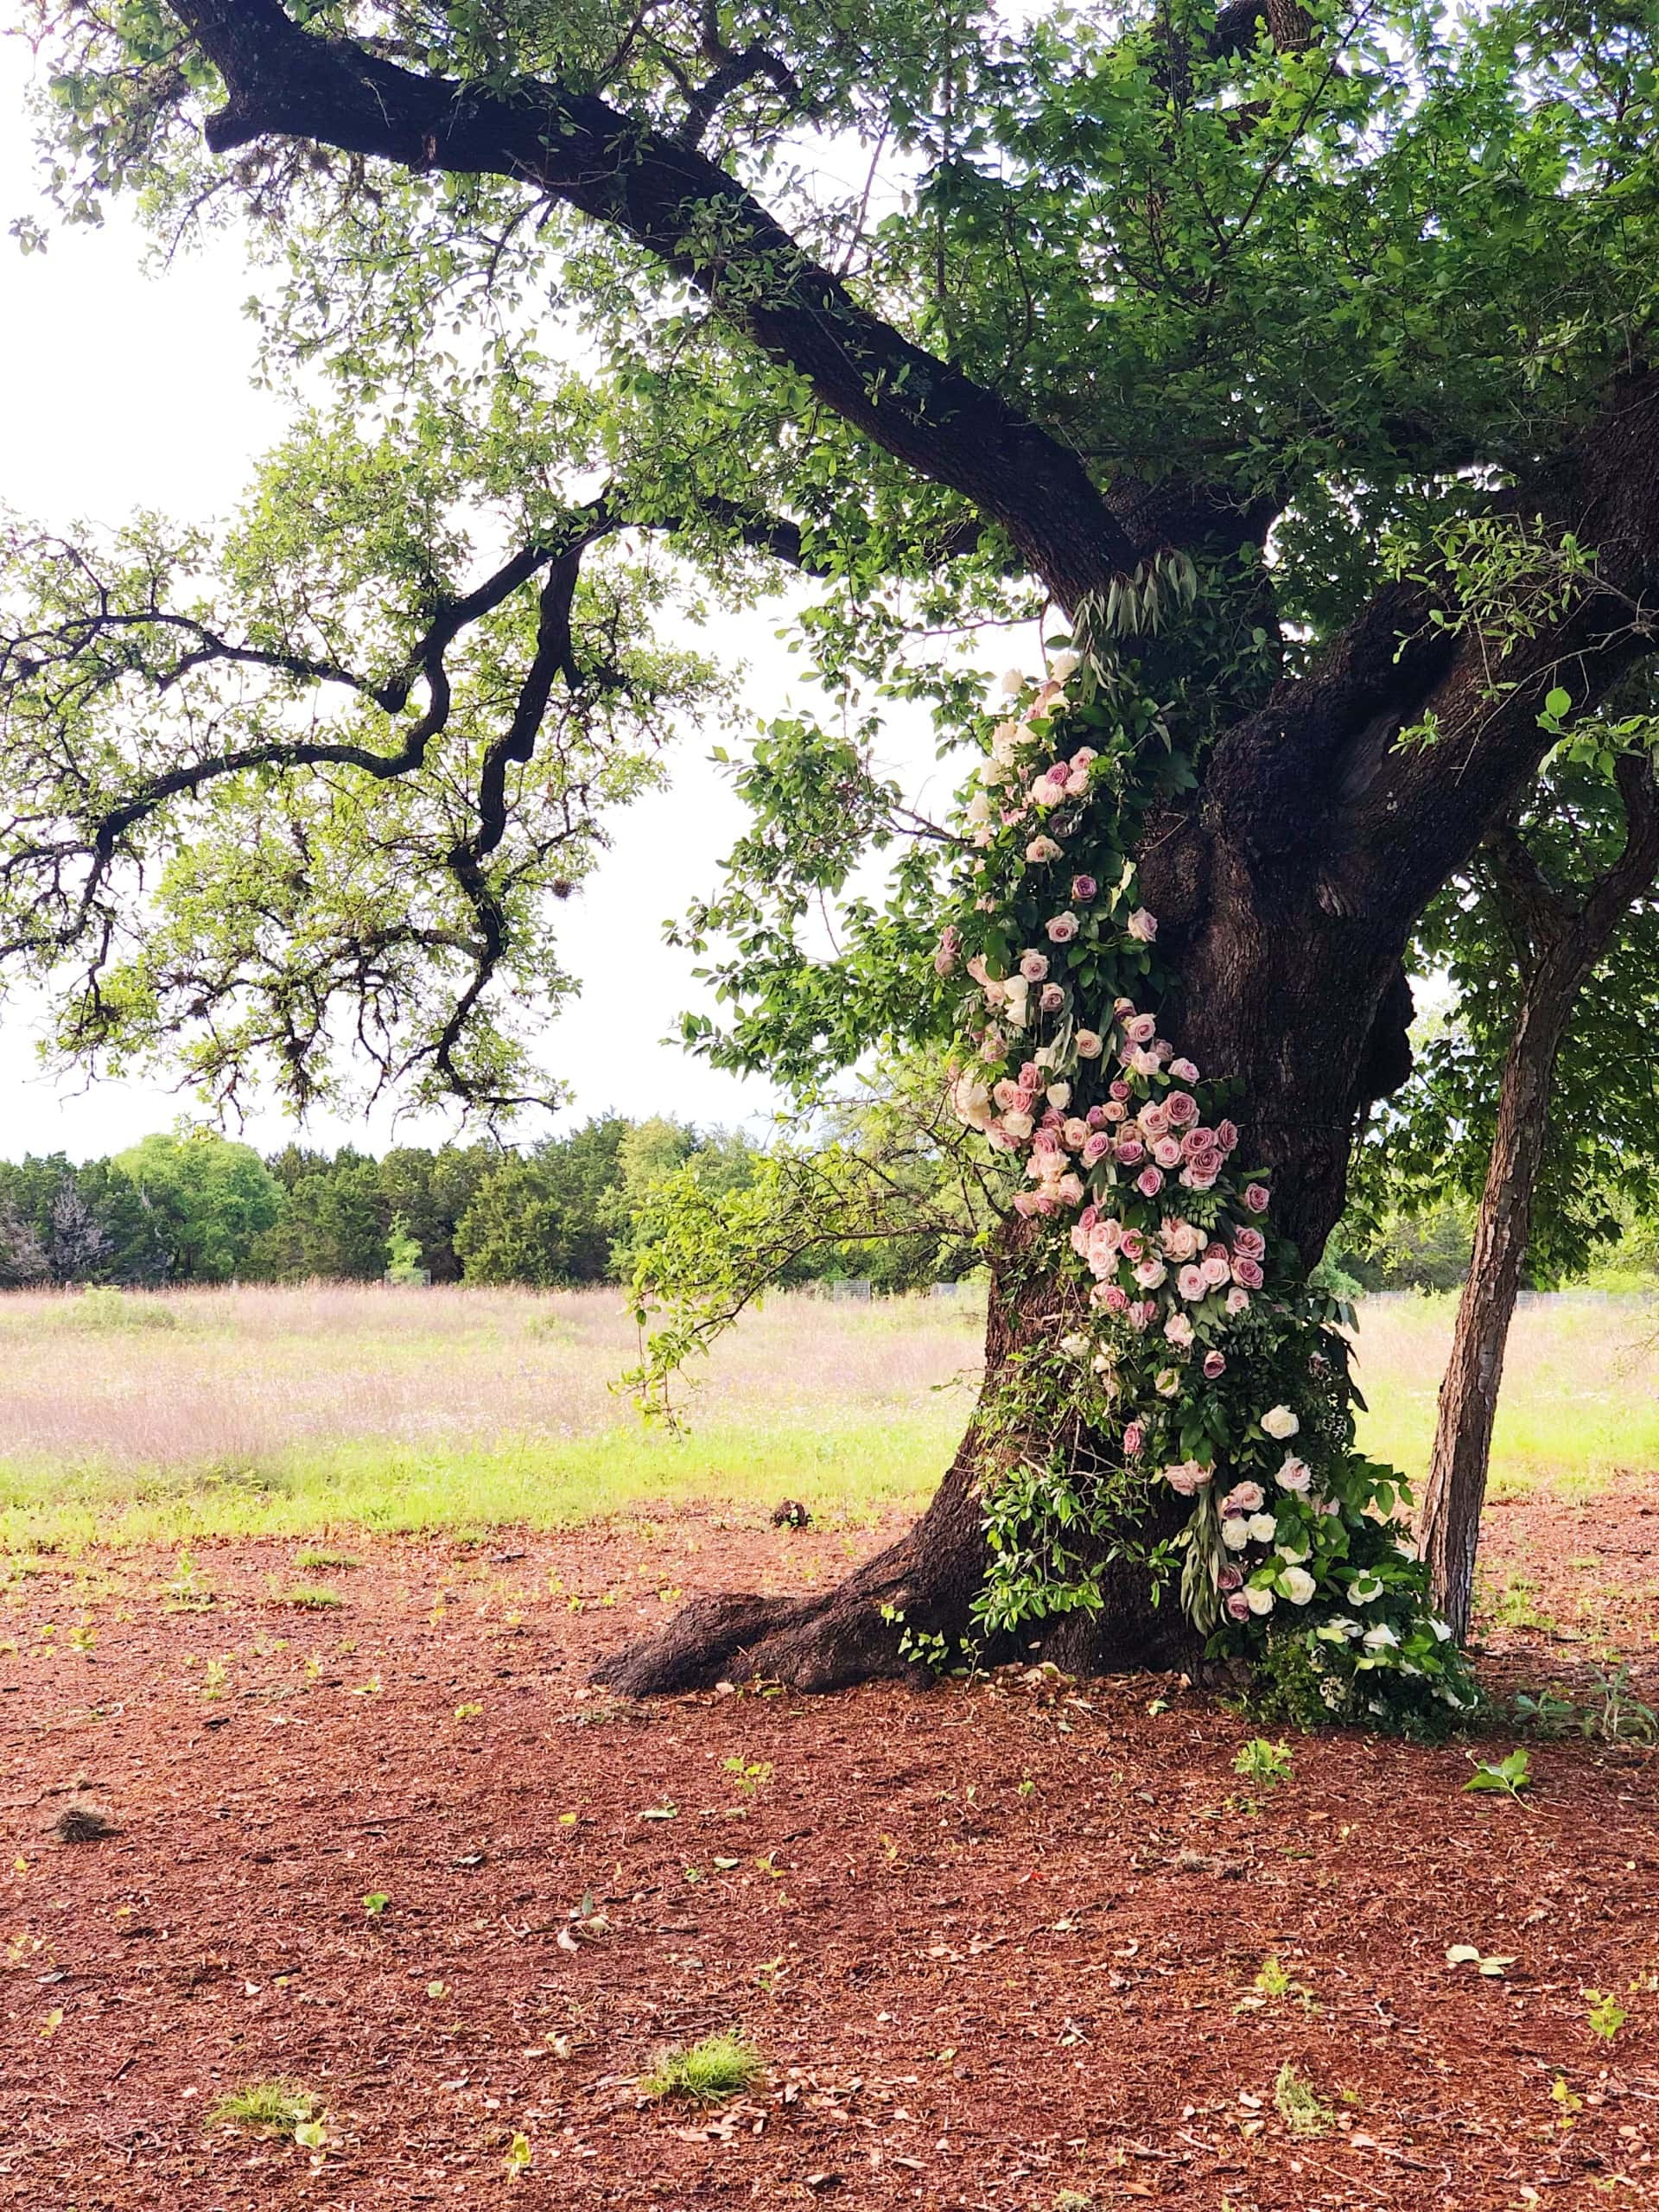 Getting married under a tree outside